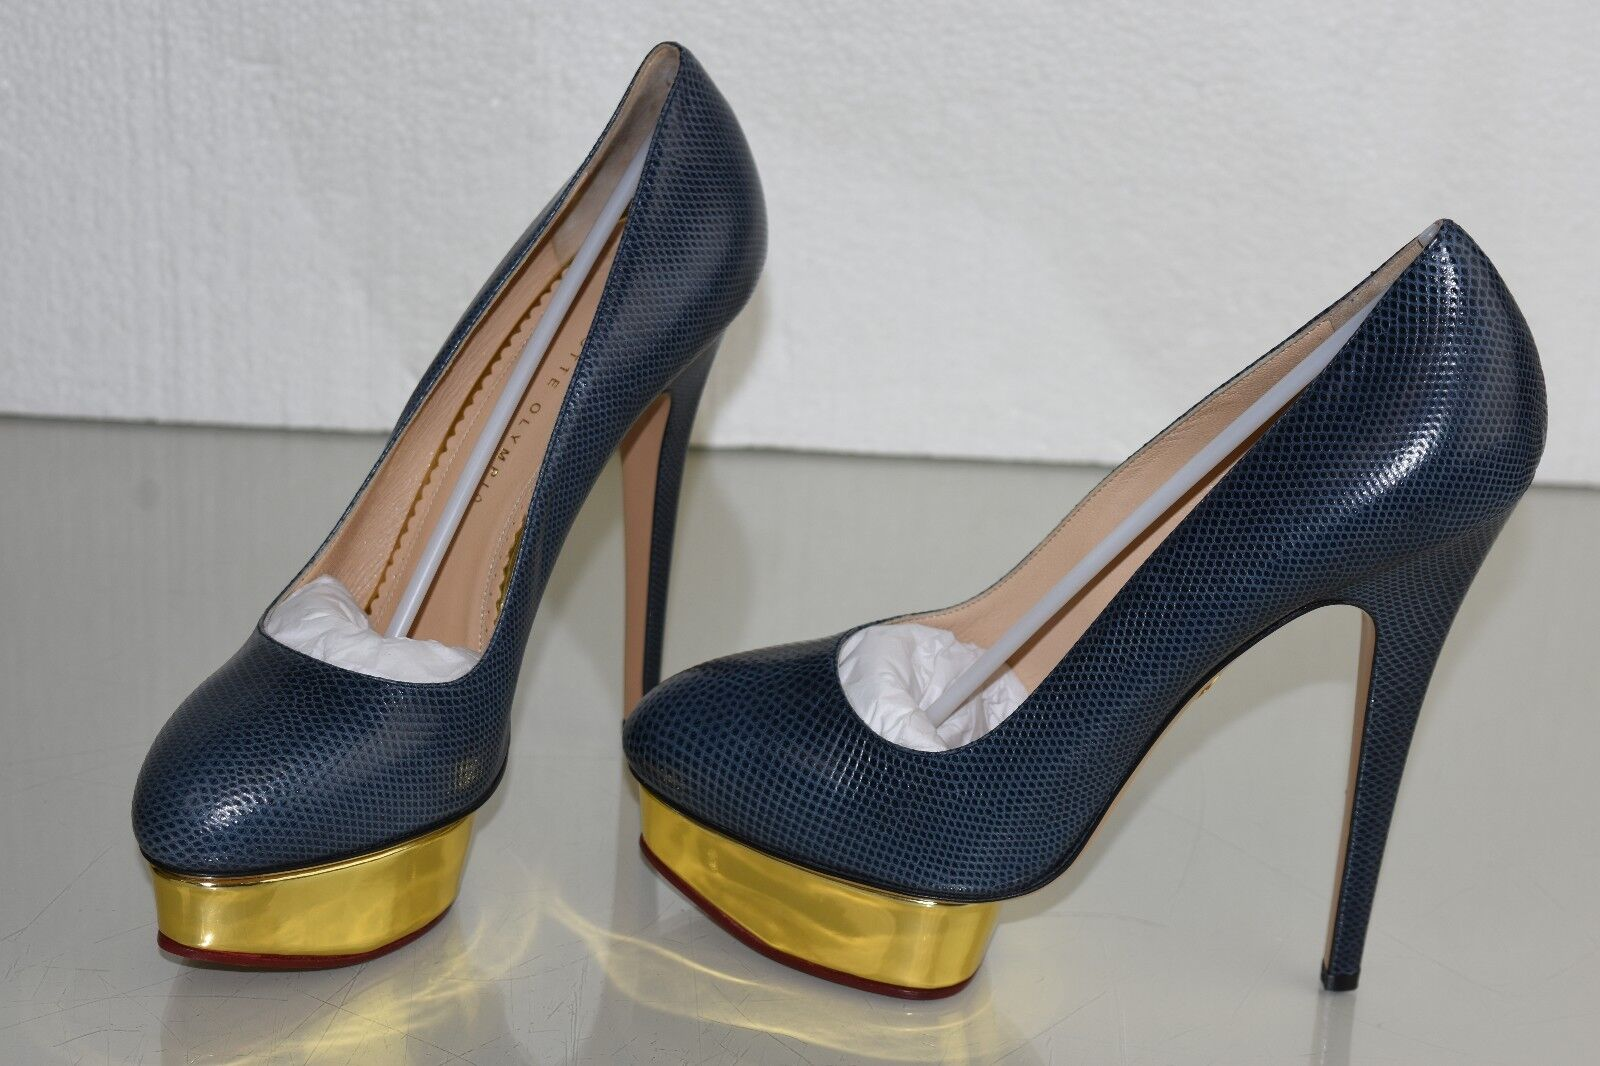 Neuf Neuf Neuf Charlotte Olympia Dolly Couvert Karung Plateformes Bleu Chaussures Plates eaf9a3